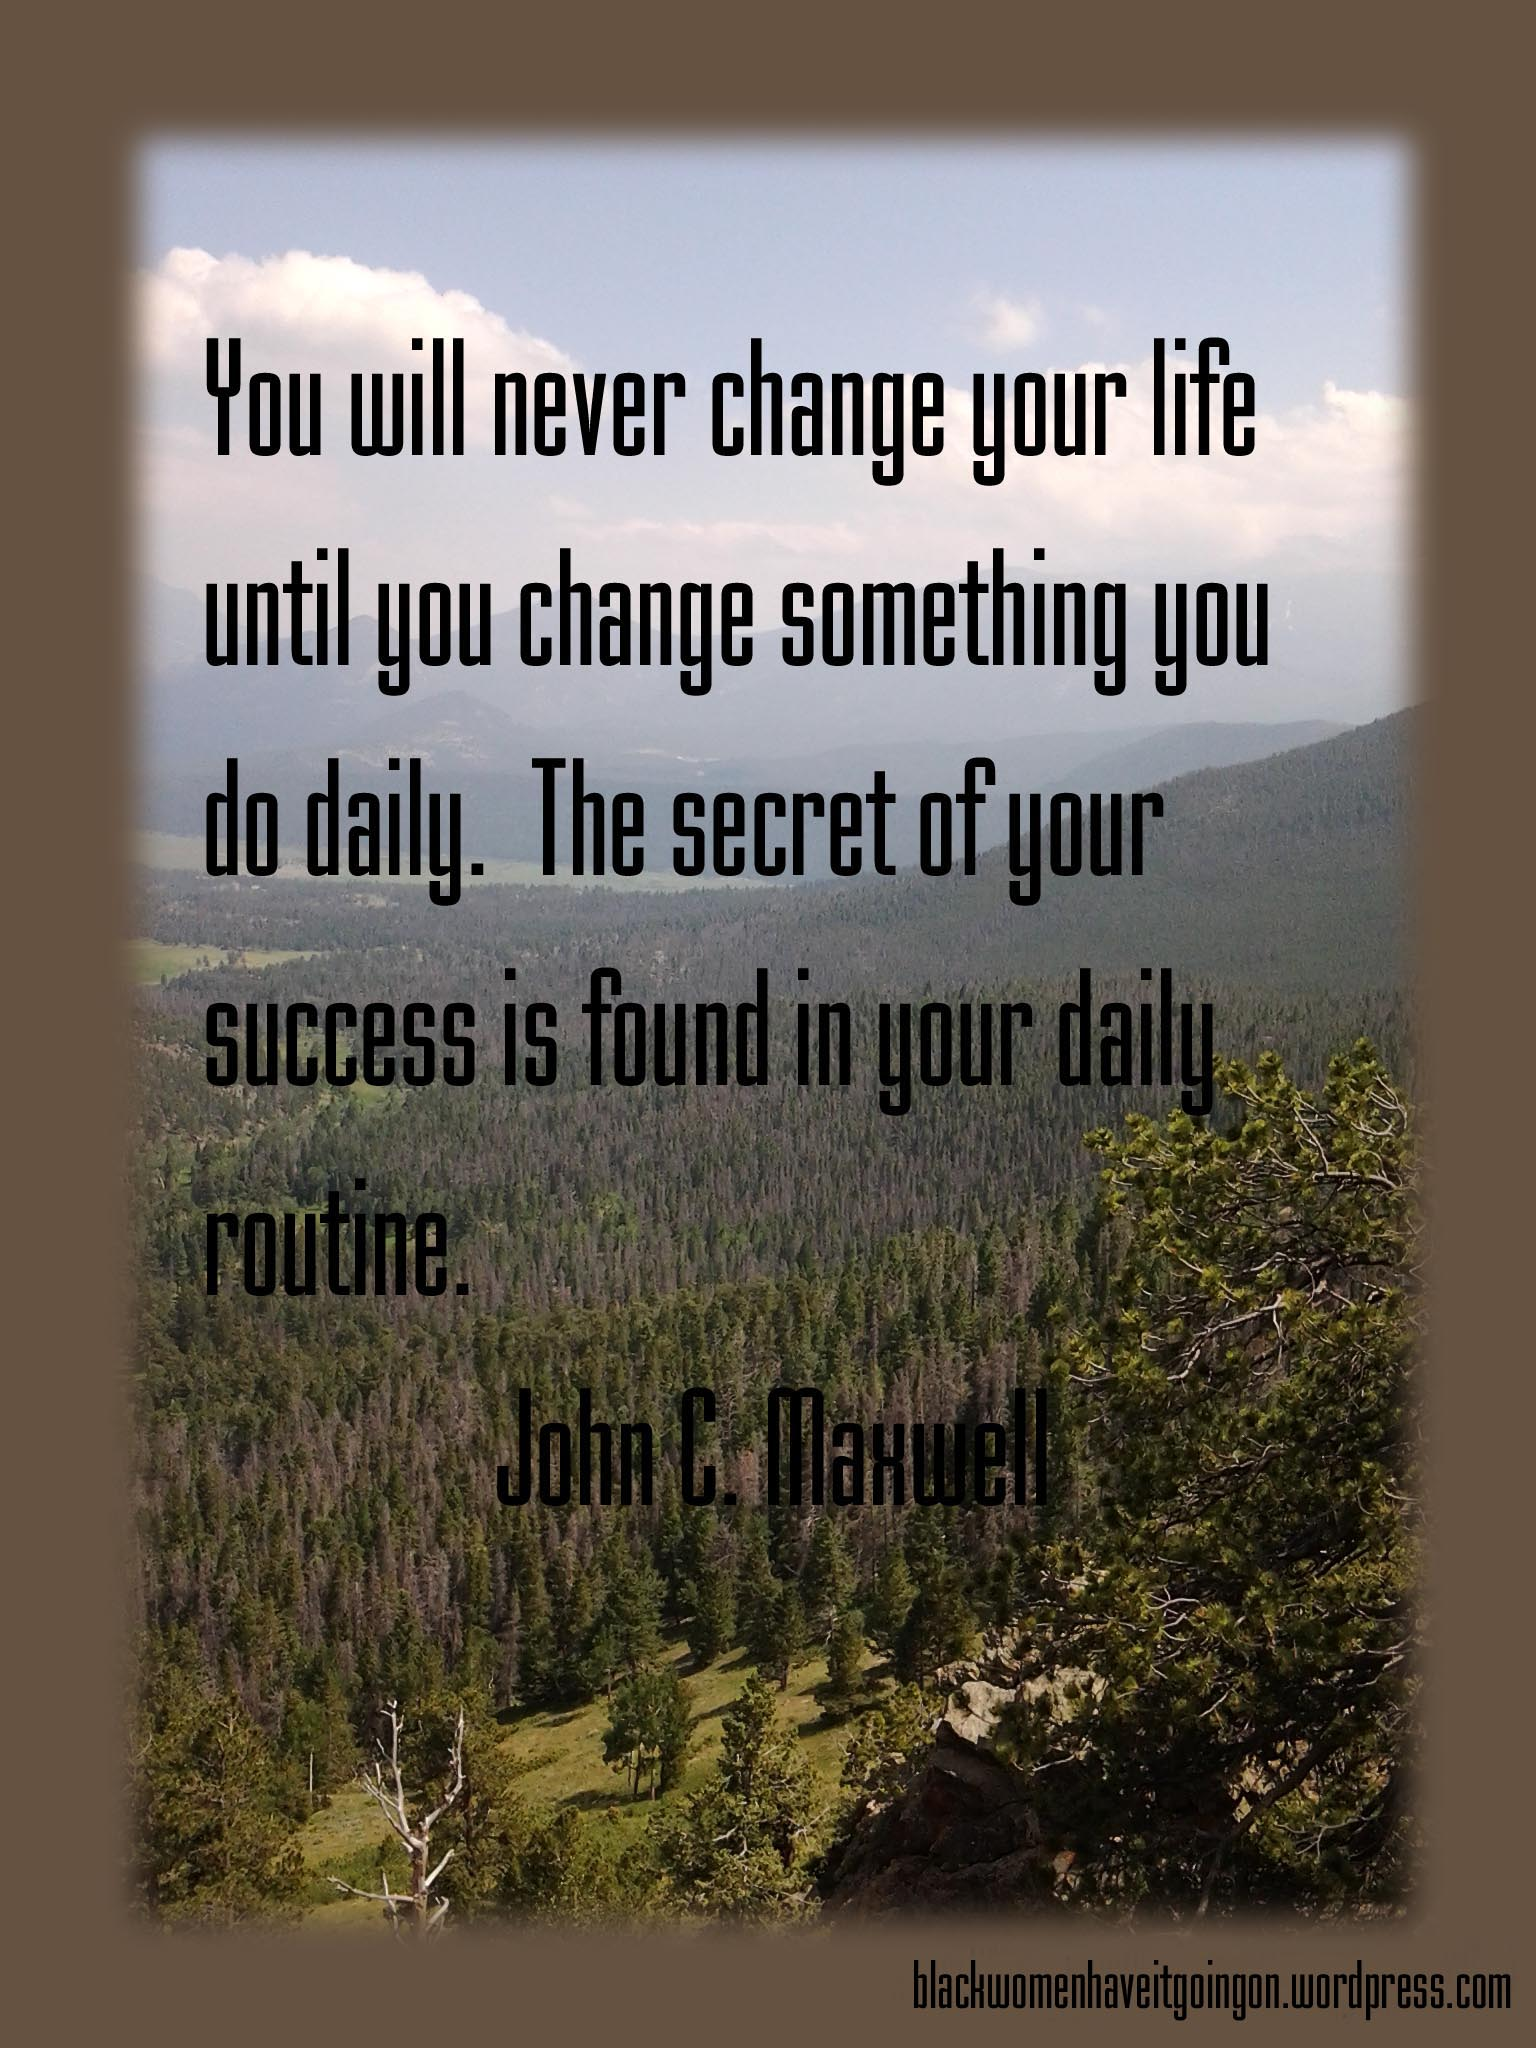 Quotes To Change Your Life John C Maxwell Black Women Have It Going On